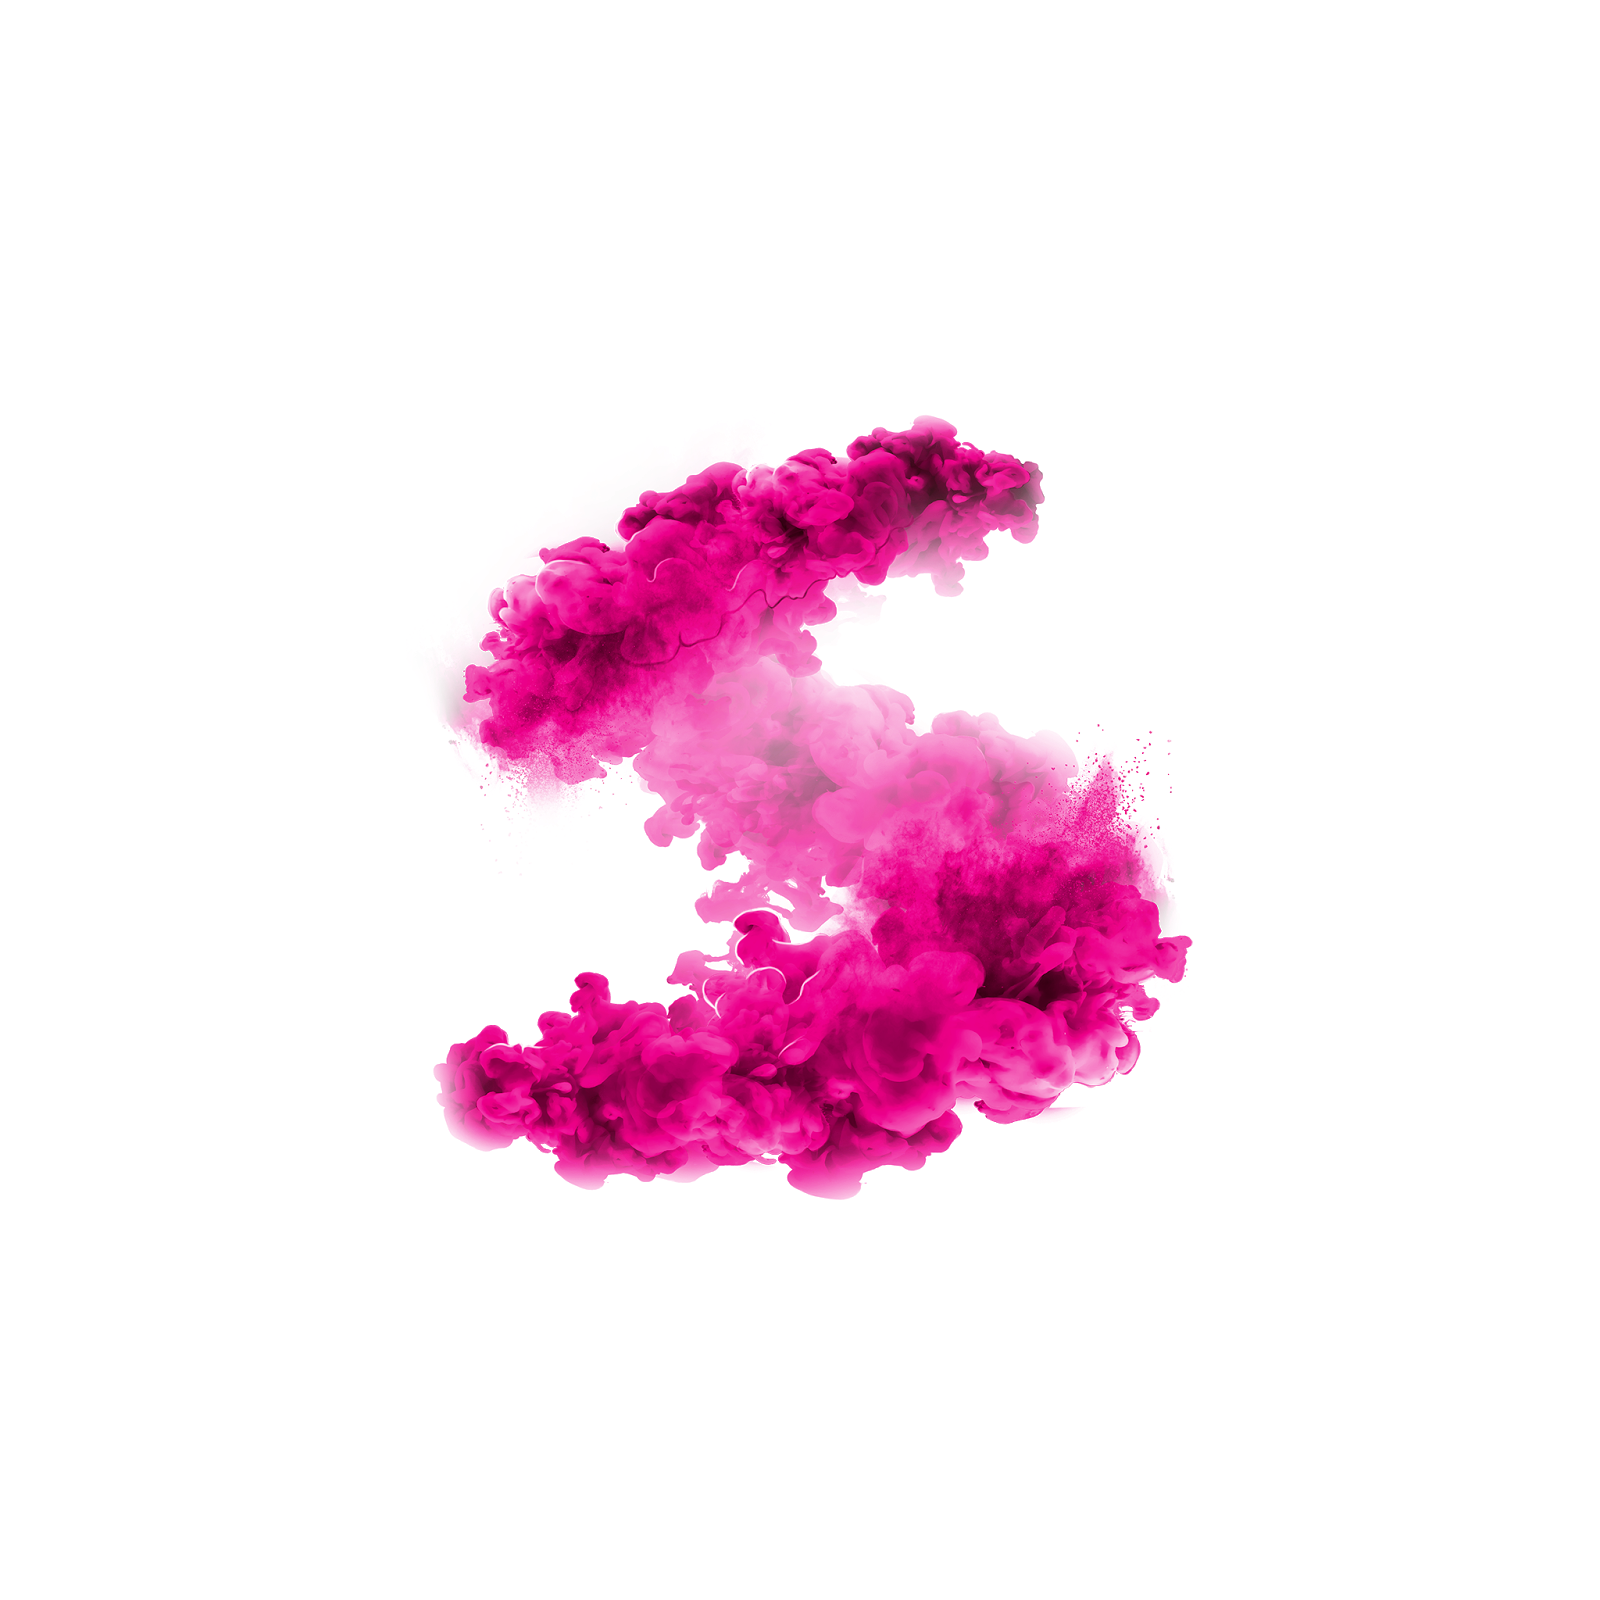 Pink fire png. Magic smoke flame paint